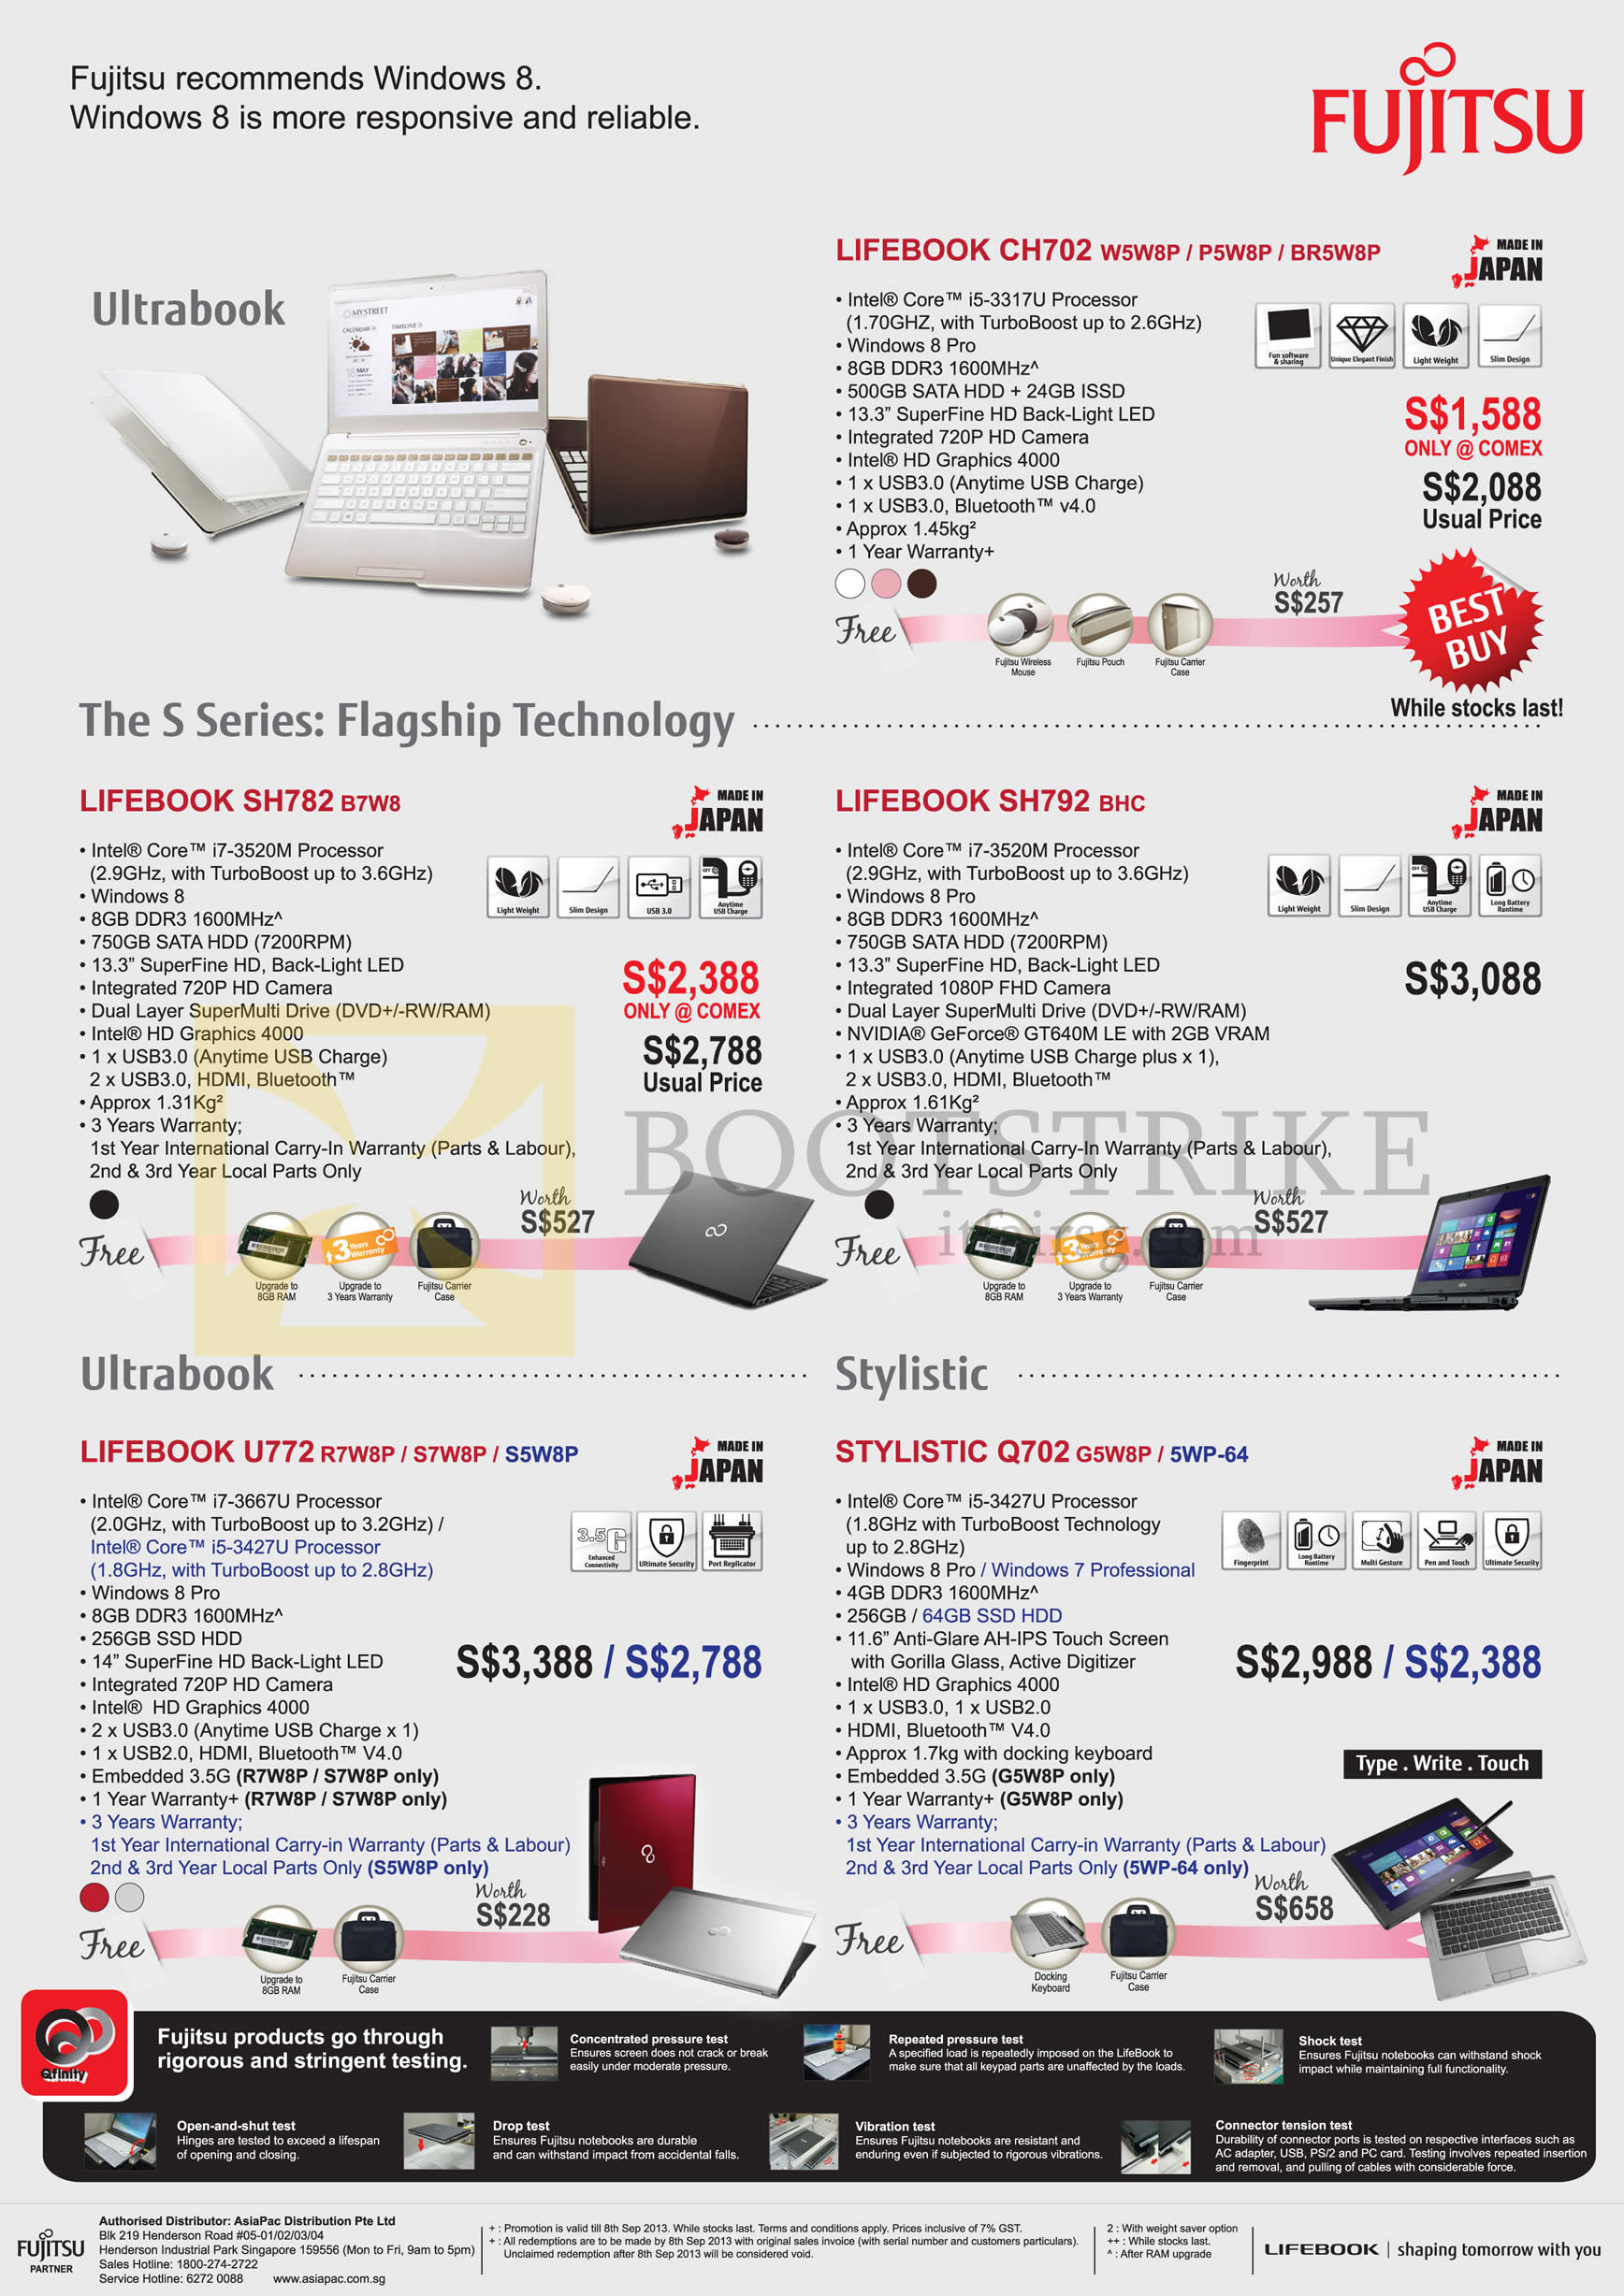 COMEX 2013 price list image brochure of Fujitsu Newstead Notebooks Lifebook CH702 W5W8p P5W8p BR5W8p, SH782 B7W8, SH792 BHC, U772 R7W8P S7W8P S5W8P, Stylistic Q702 G5W8P 5WP-64